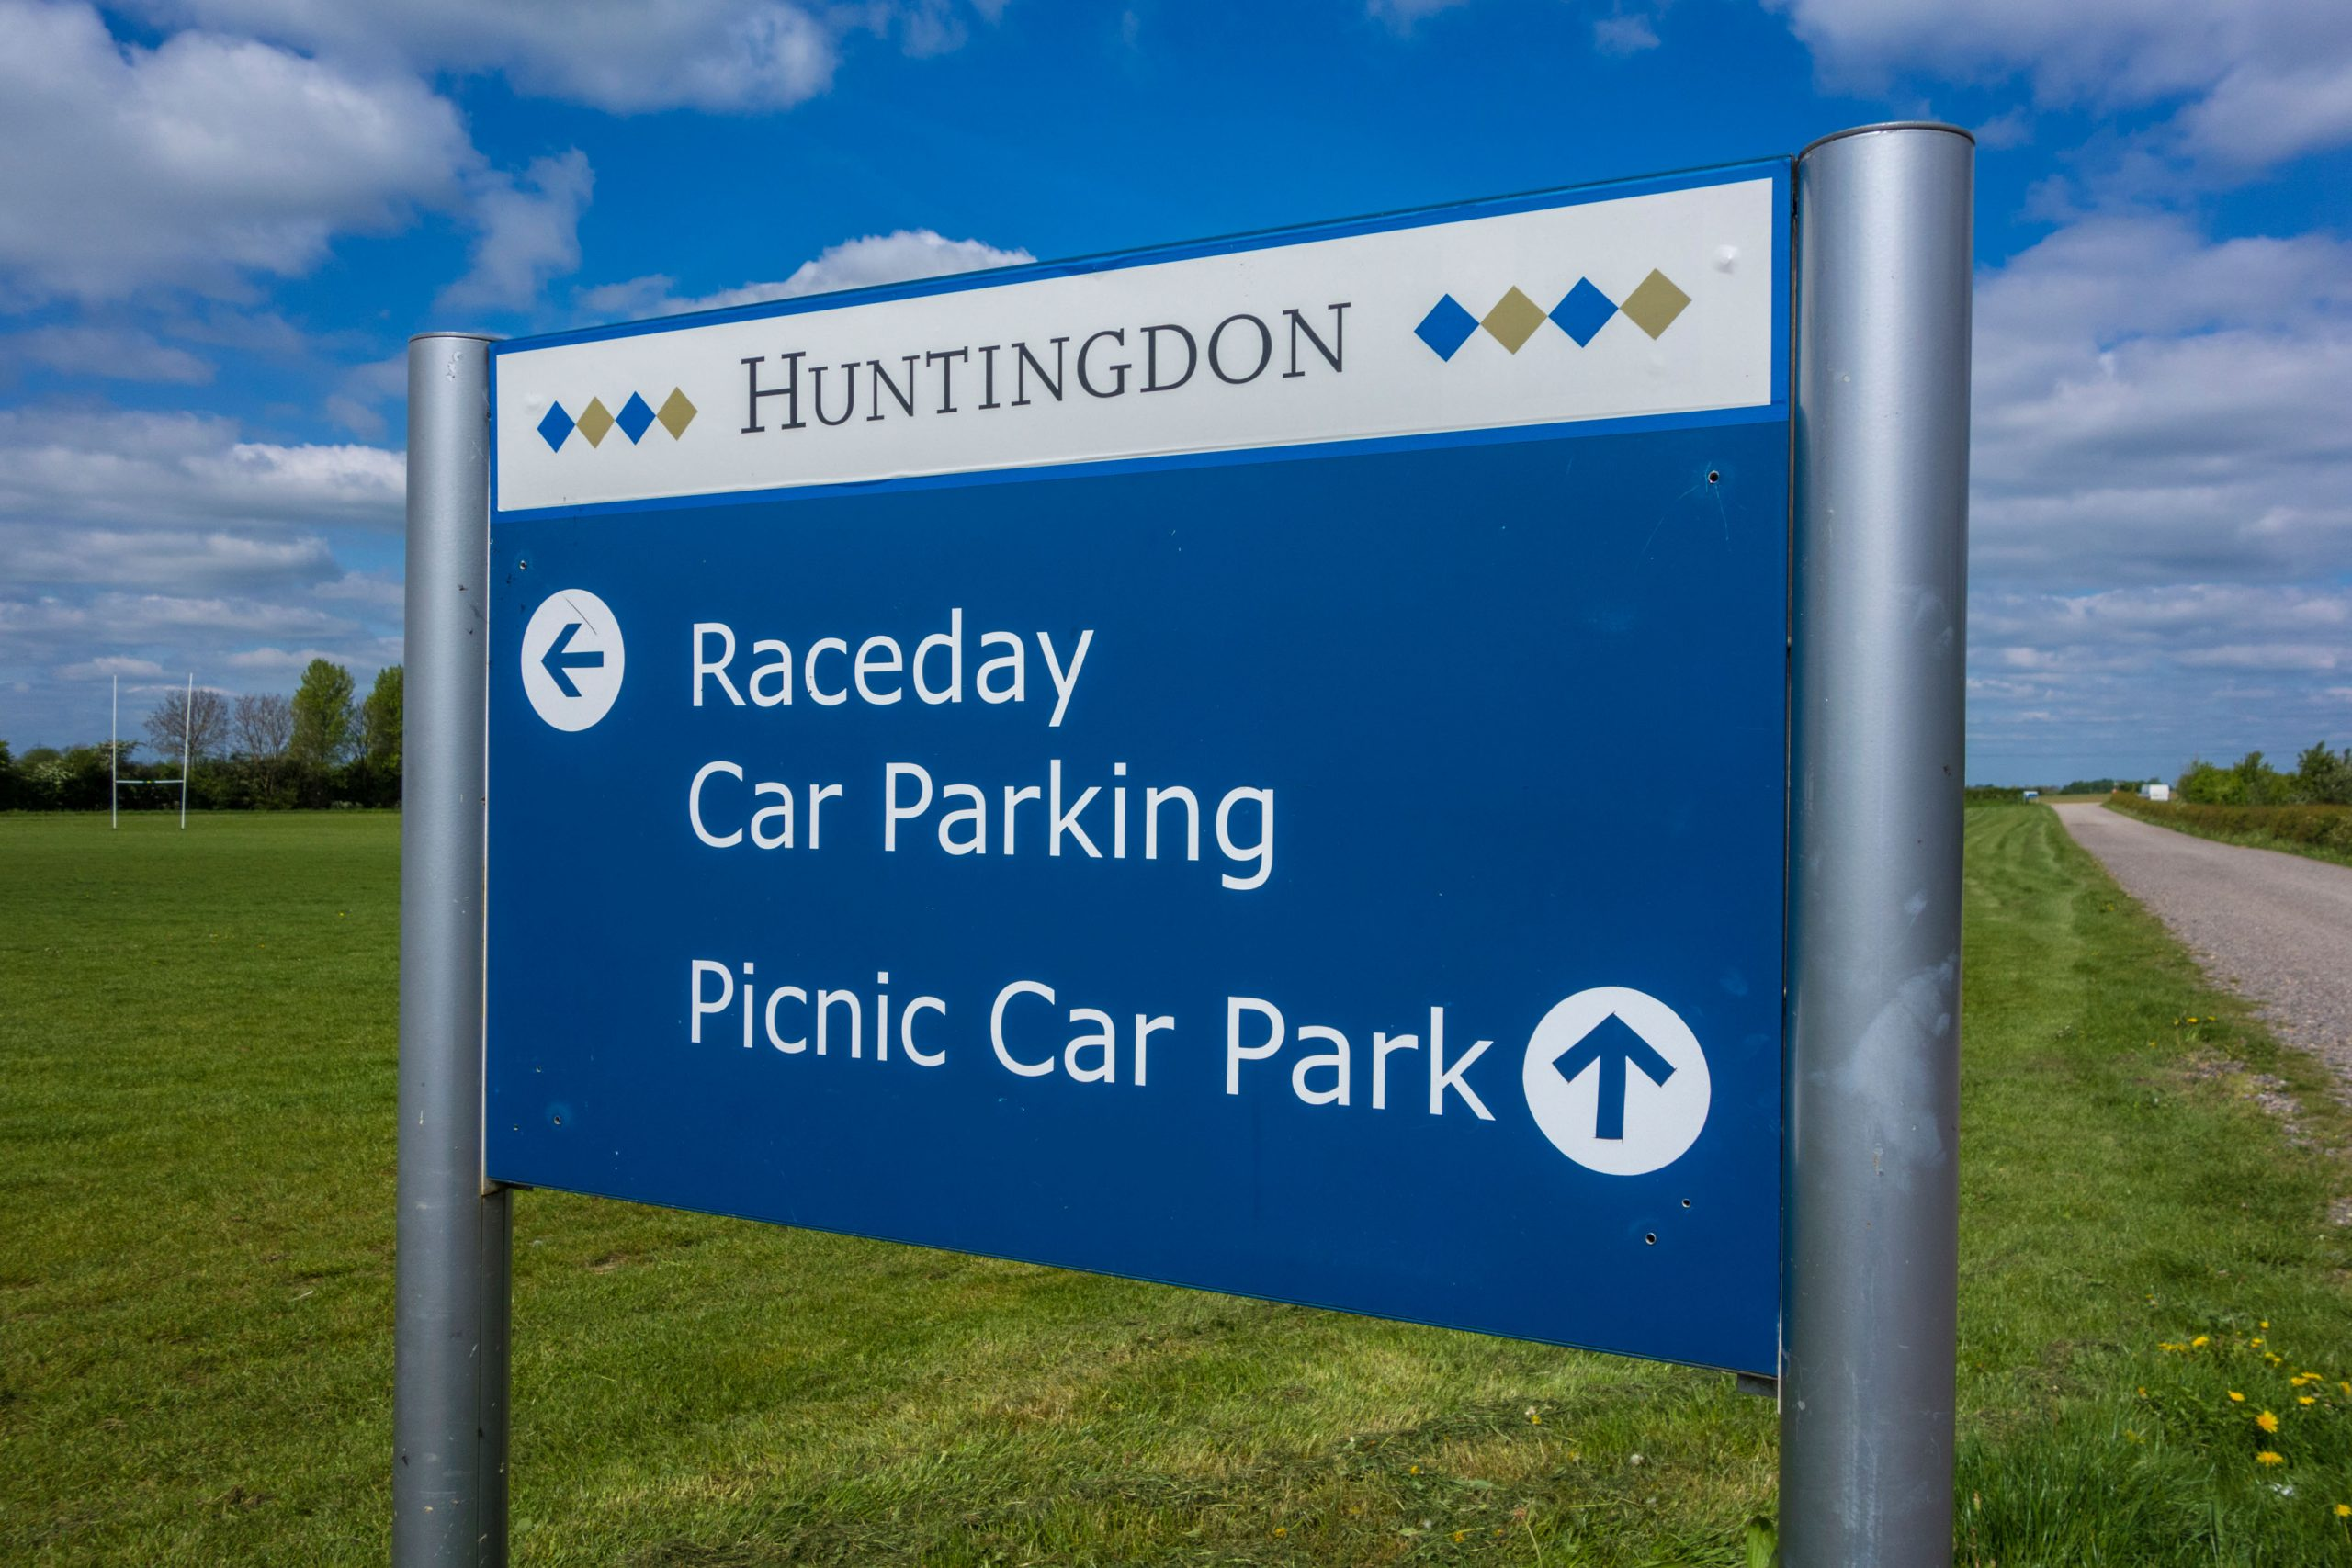 E079ED Huntingdon racecourse direction sign to car parking and picnic area